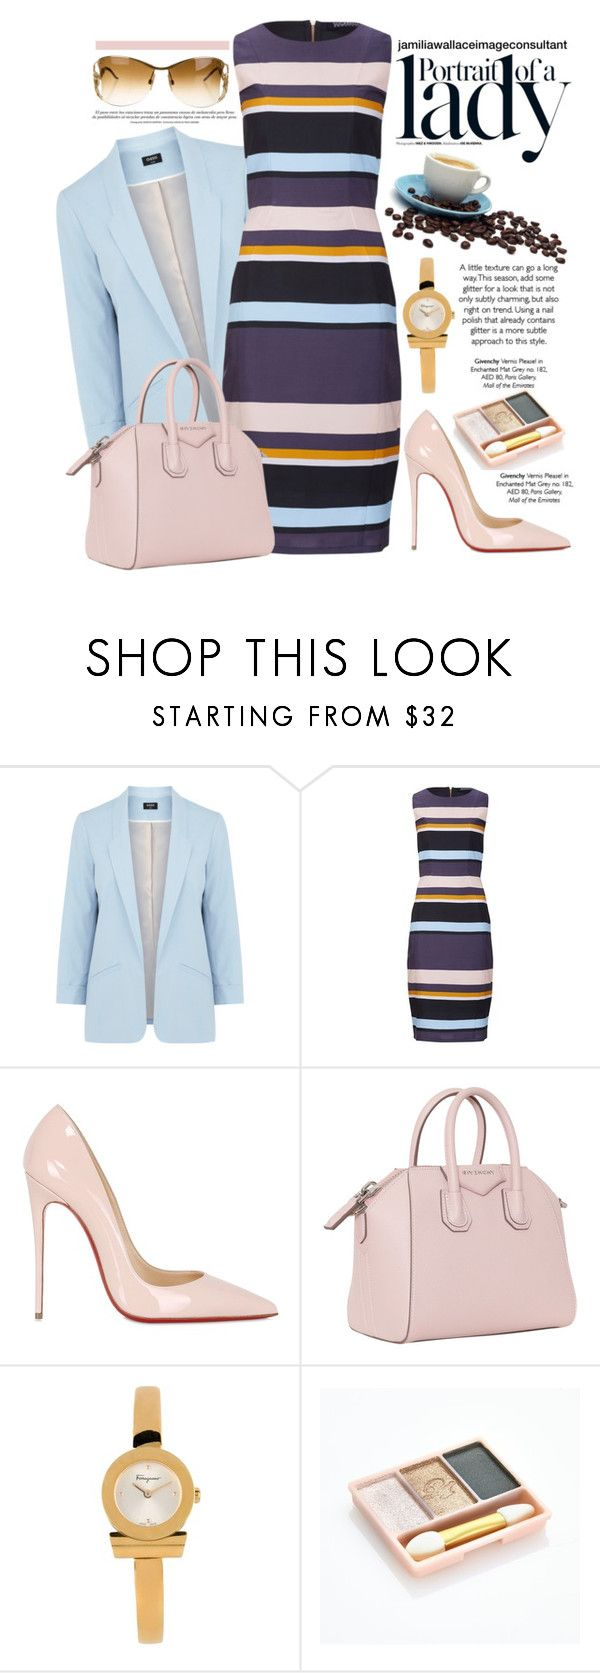 """""""Ideal Image"""" by jamilia-wallace ❤ liked on Polyvore featuring Oasis, Inez & Vinoodh, Sugarhill Boutique, Christian Louboutin, Givenchy, Salvatore Ferragamo, Paul & Joe and Roberto Cavalli"""